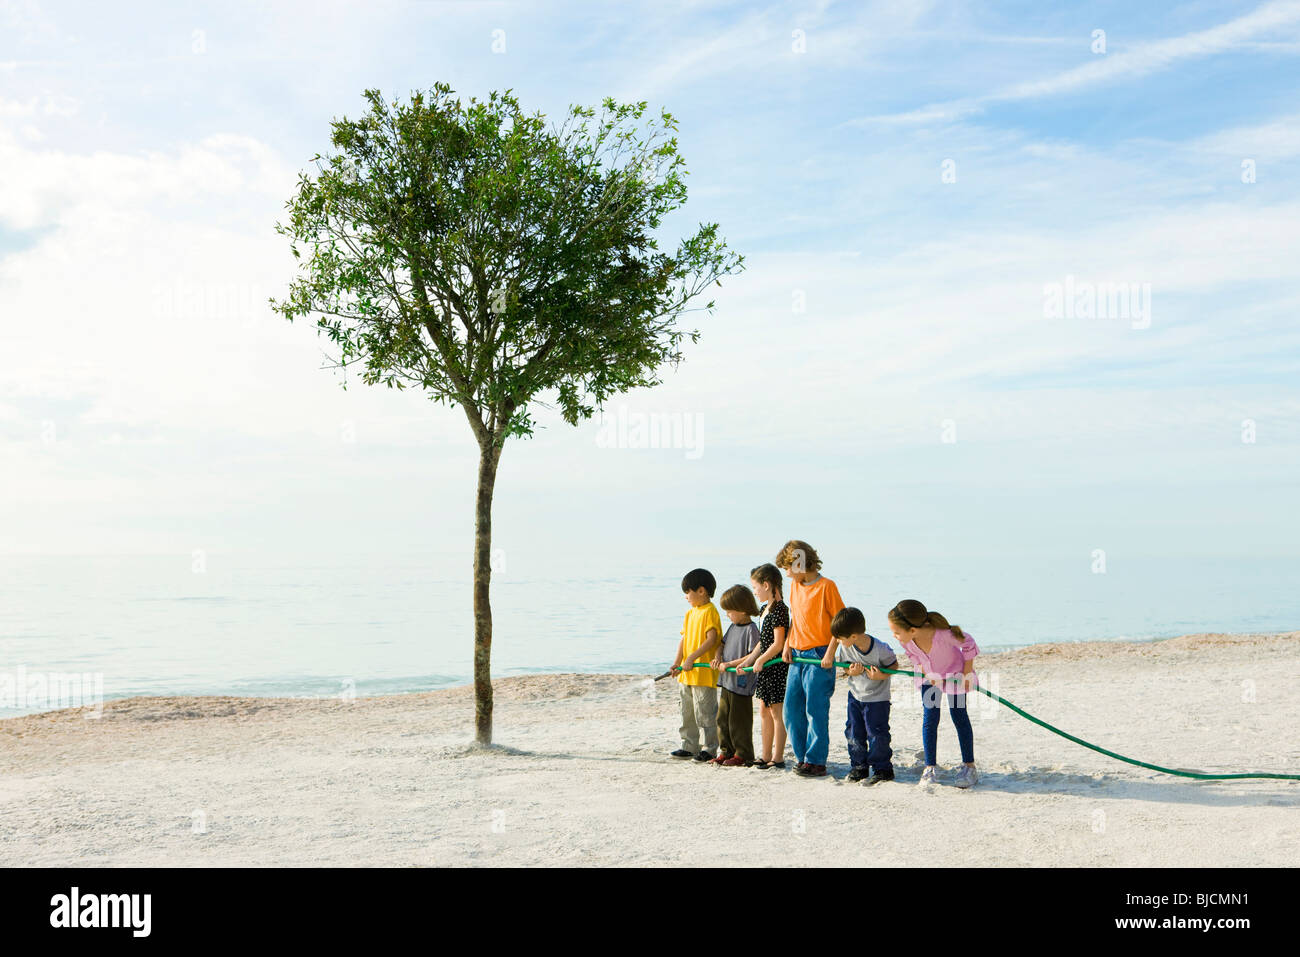 Ecology concept, children watering tree growing on beach - Stock Image